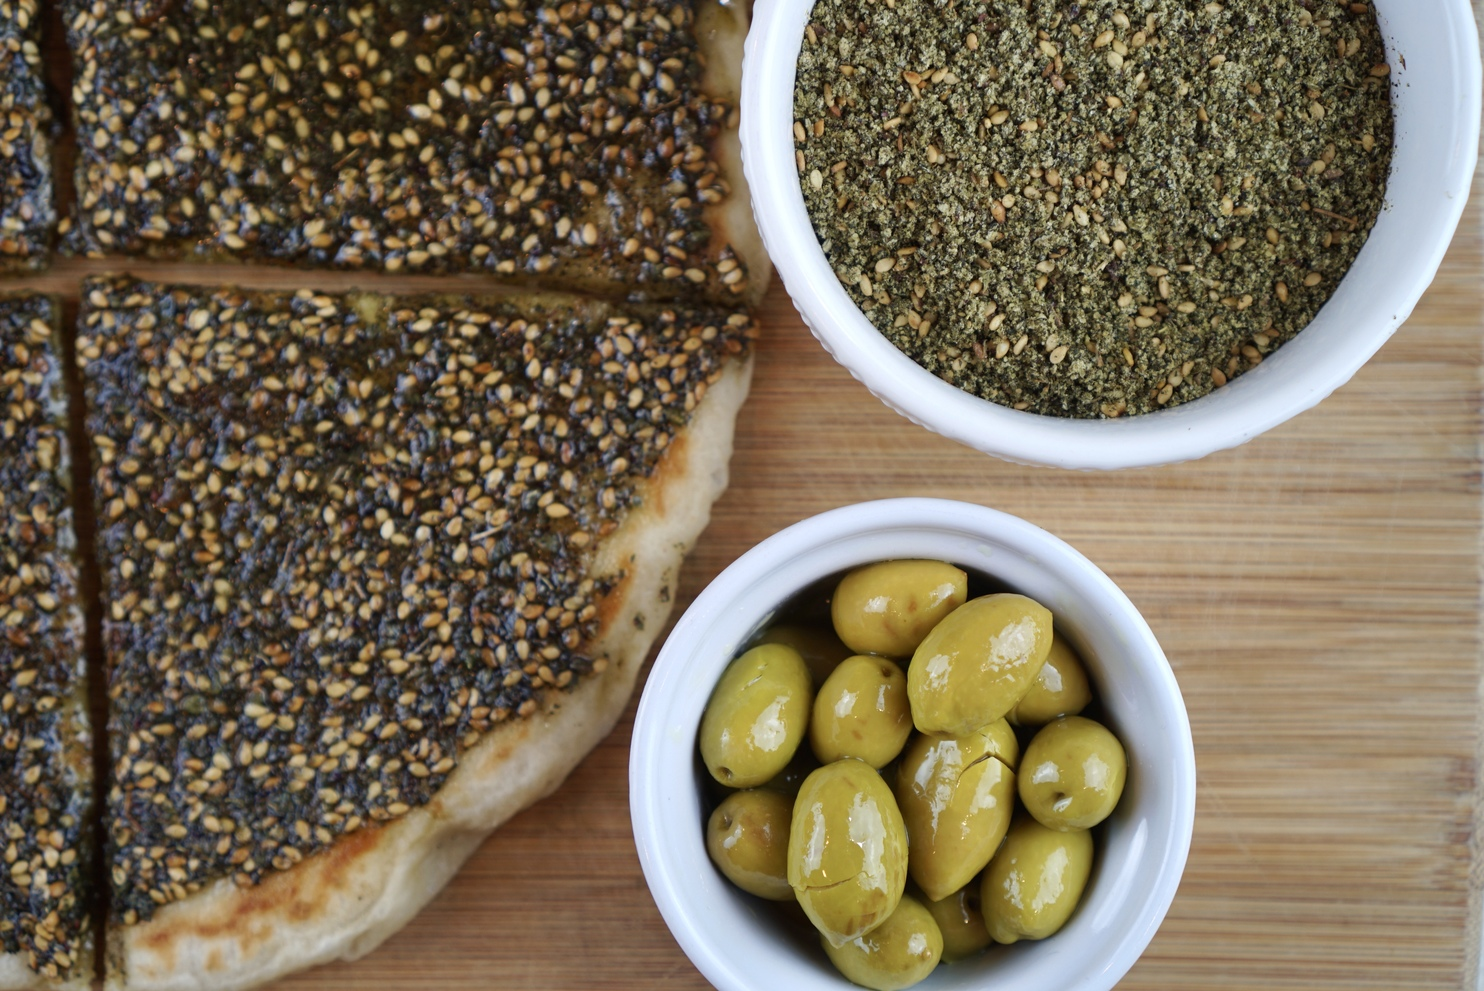 The manoushe or middle eastern flatbread is the ultimate street food. Made with only the most humble ingredients it is one of the most popular foods you can find it coming out of almost every corner bakery